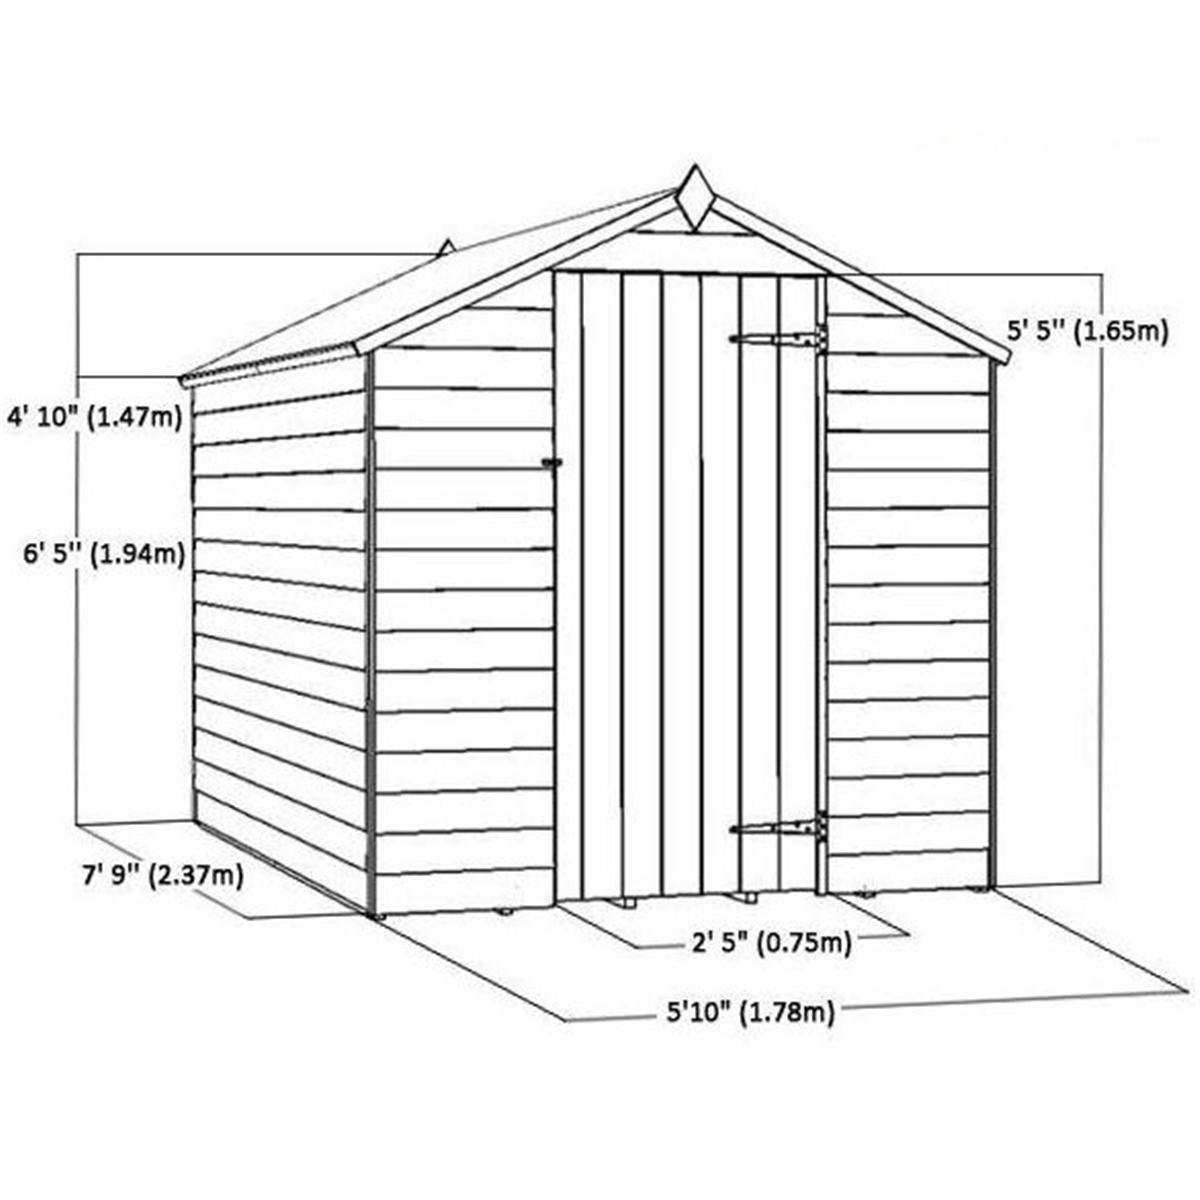 Garden Sheds 2 5 X 1 5 flash reduction** 8ft x 6ft overlap apex shed with single door + 2